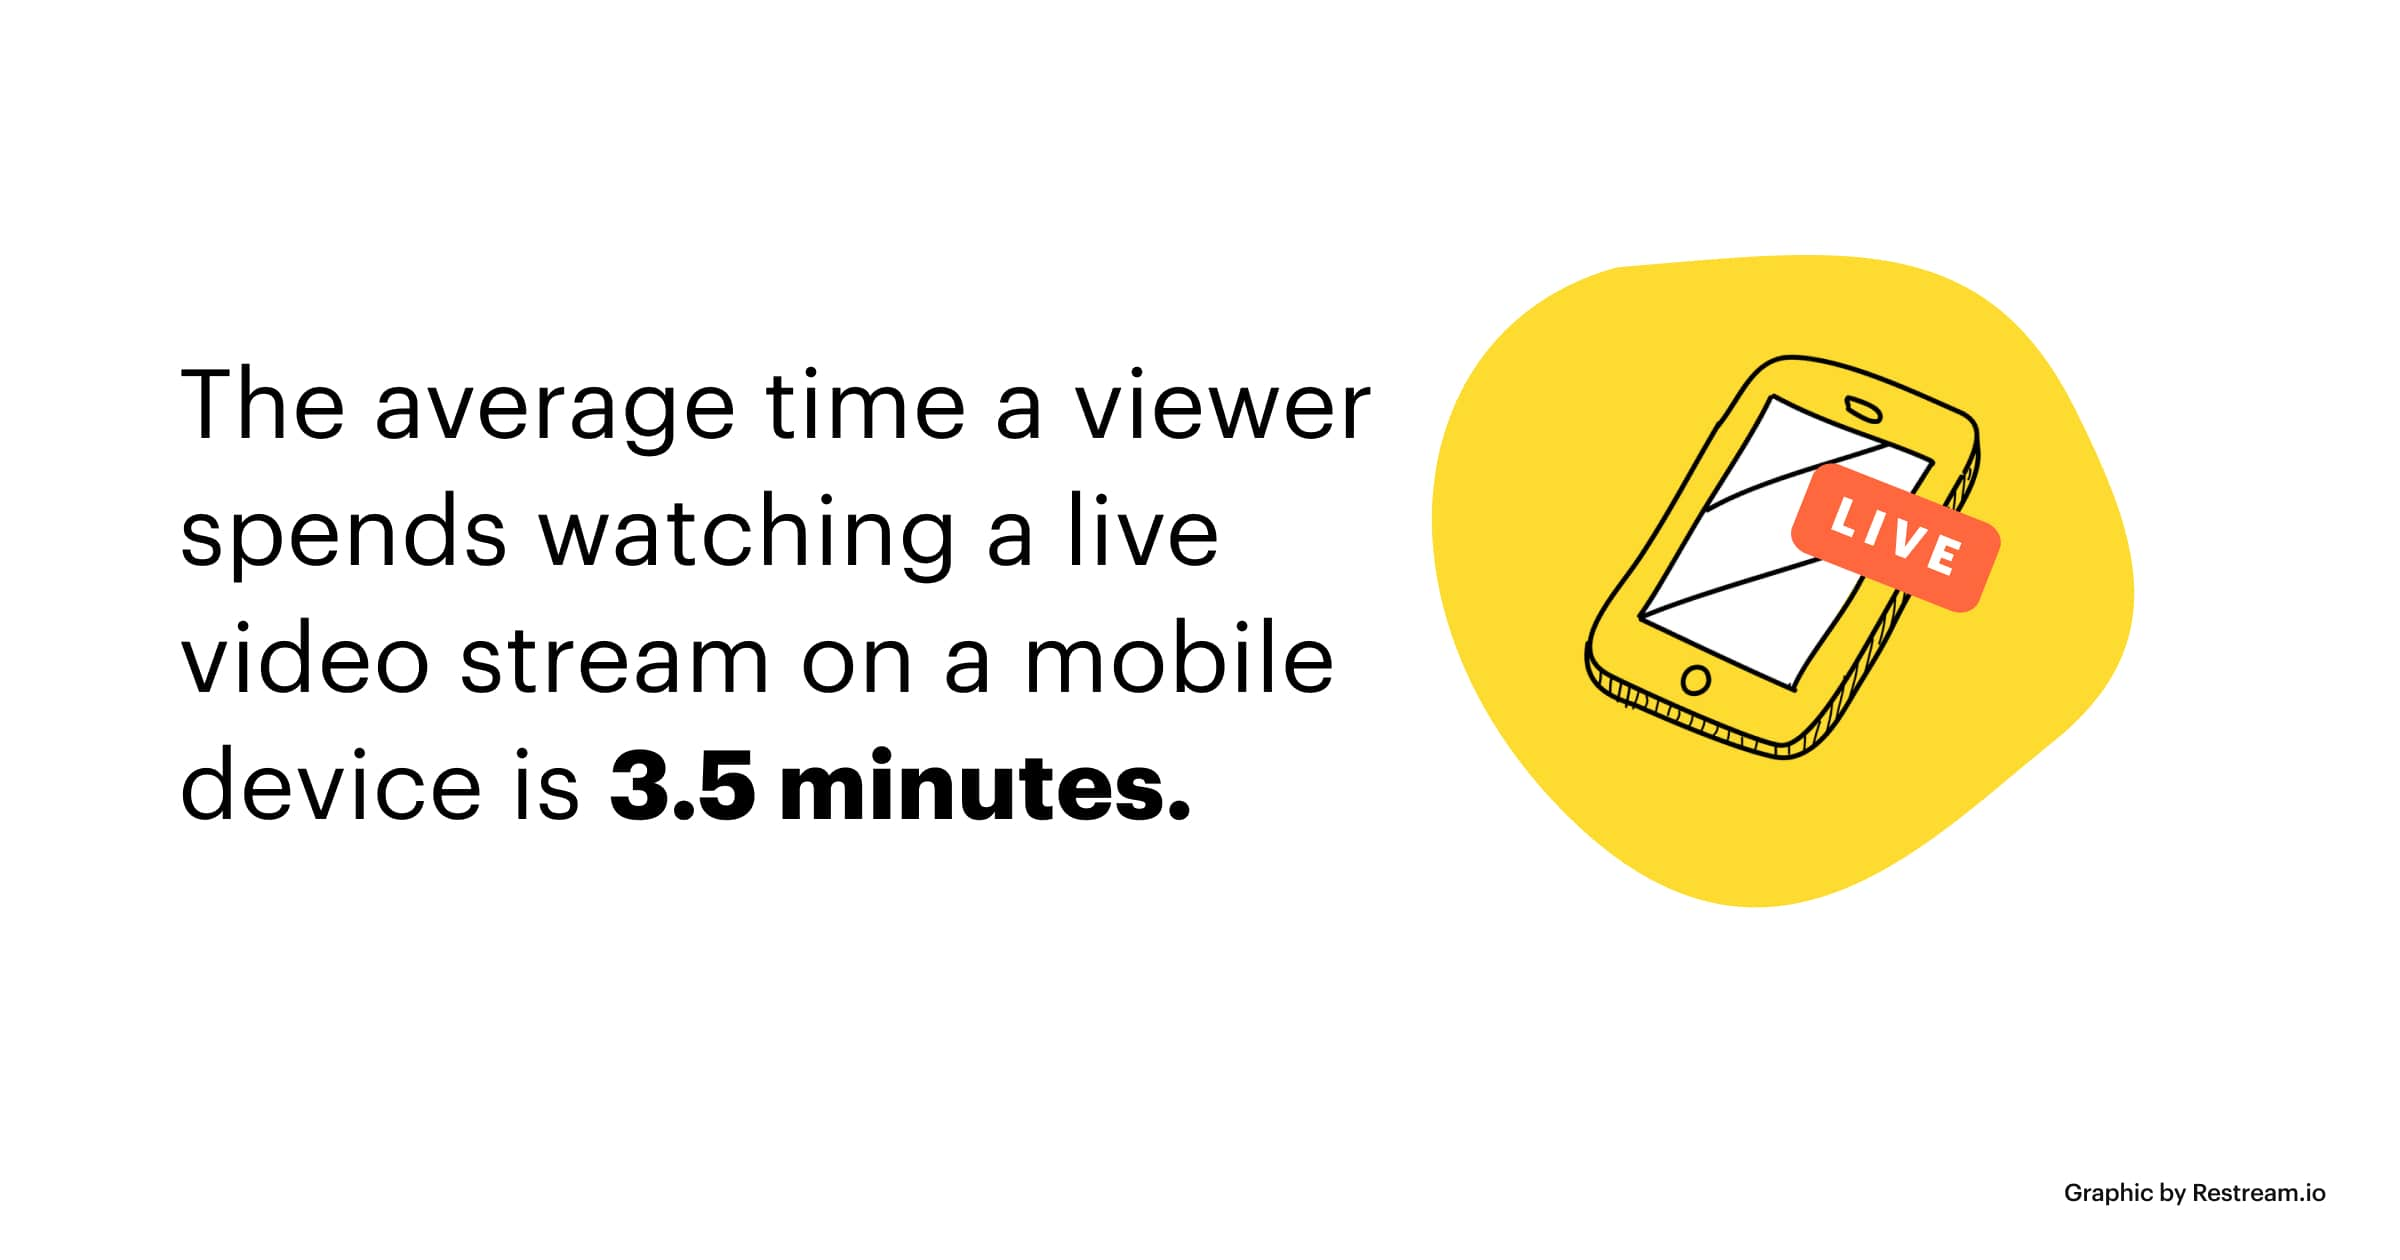 The average time a viewer spends watching a live video stream on a mobile device is 3.5 minutes.